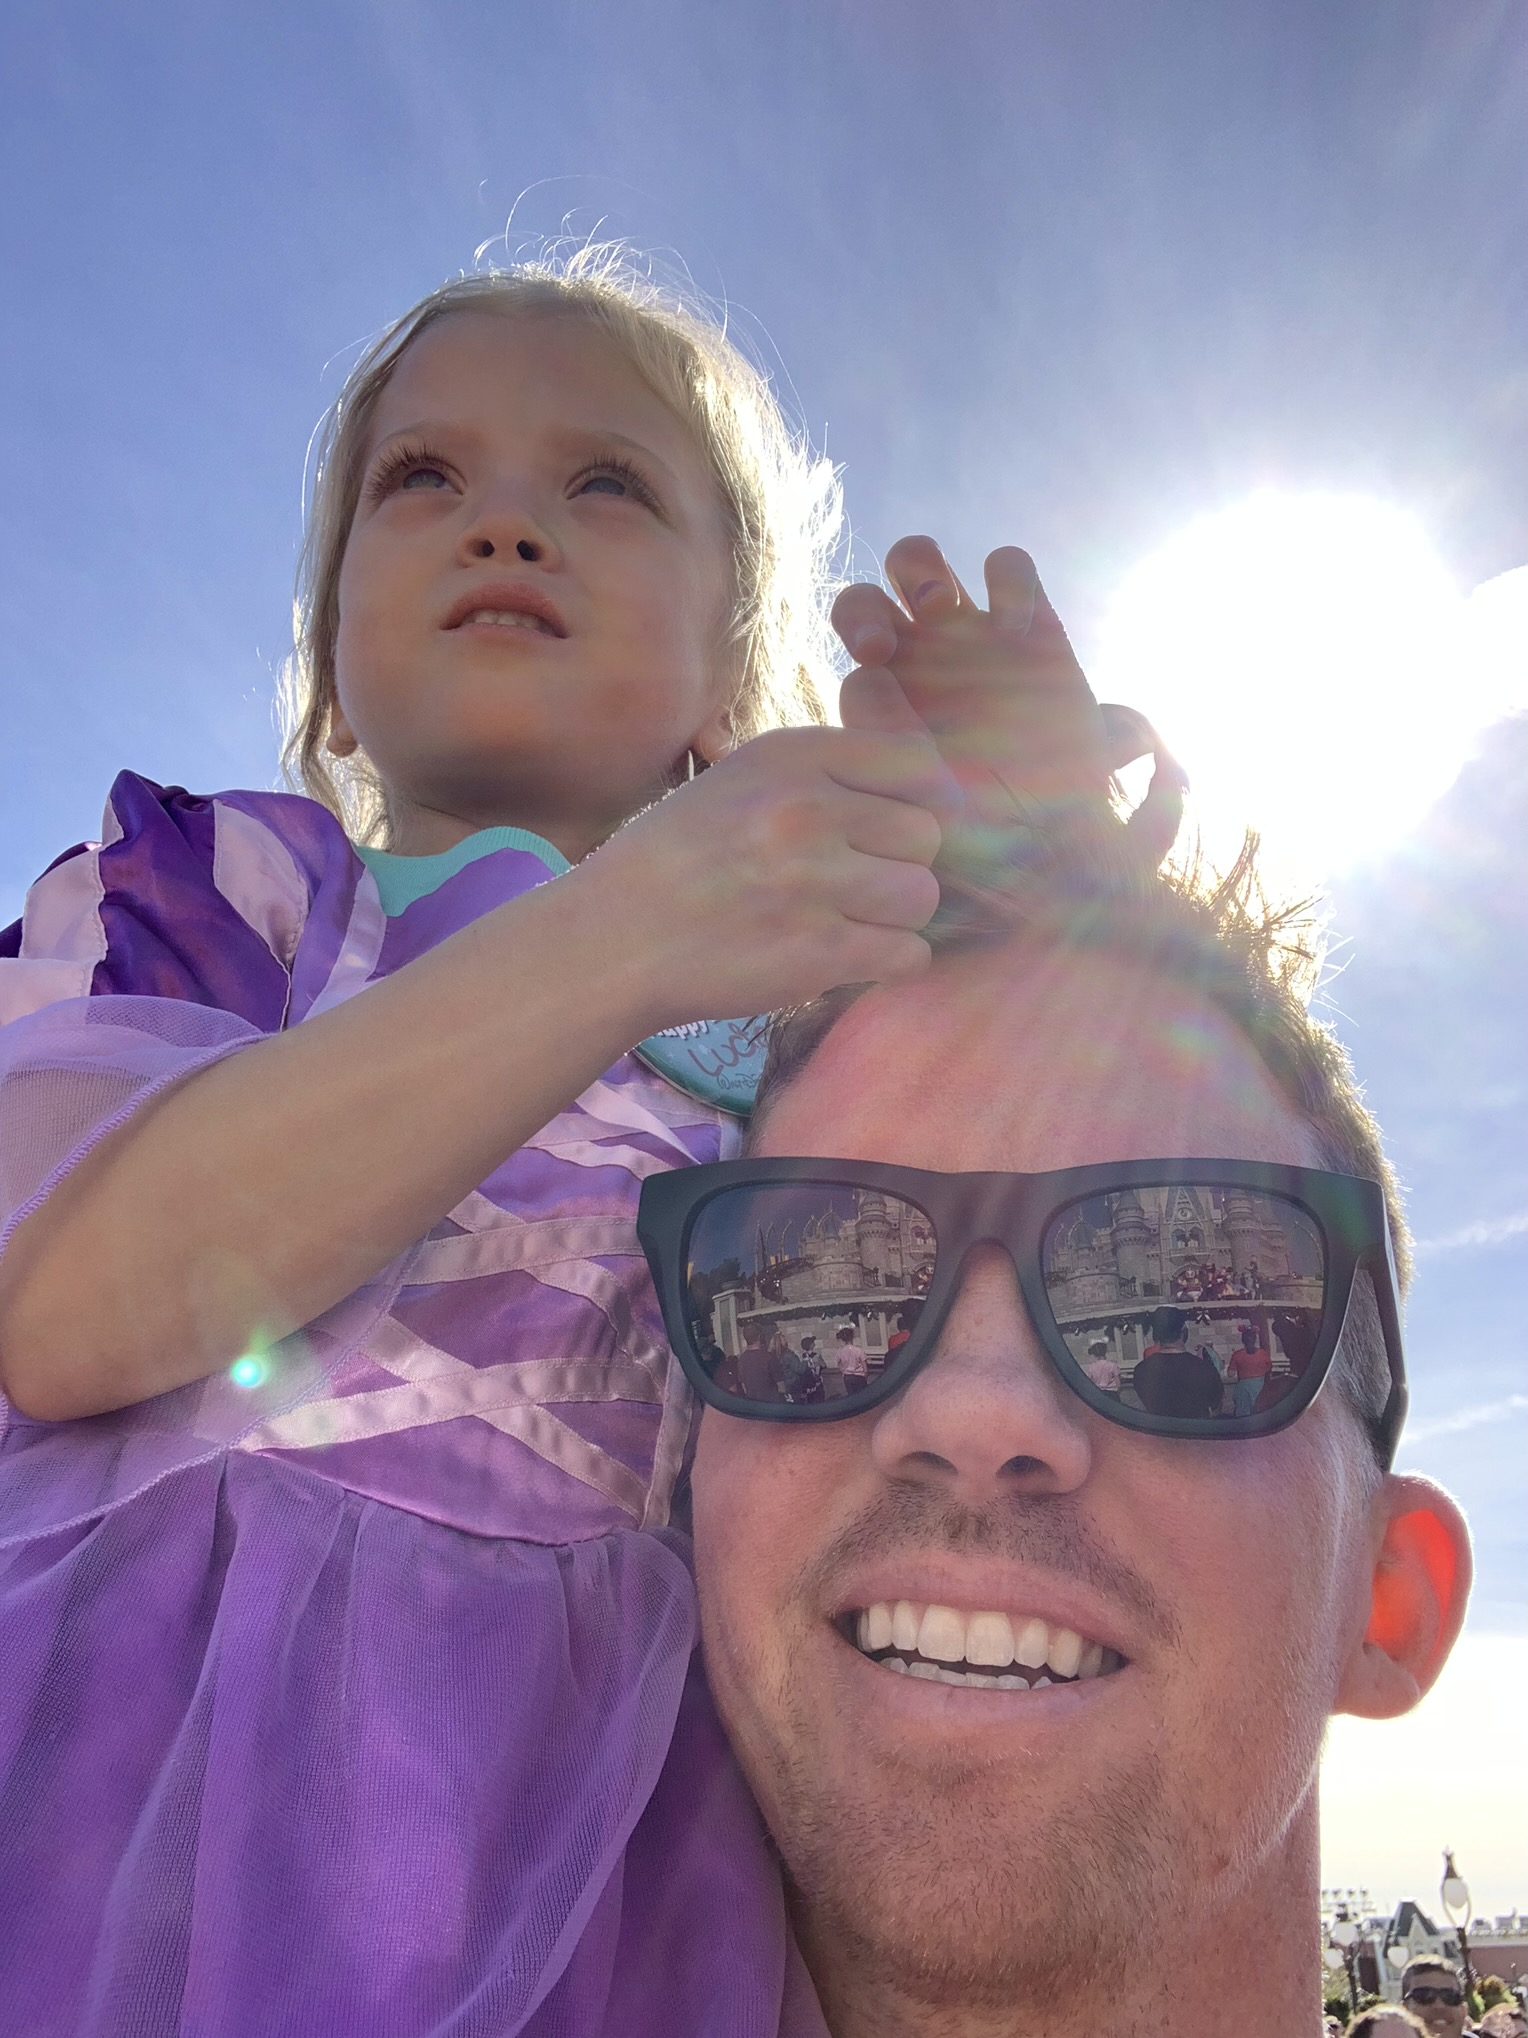 Best seat in the house: Daddy-O's shoulders!